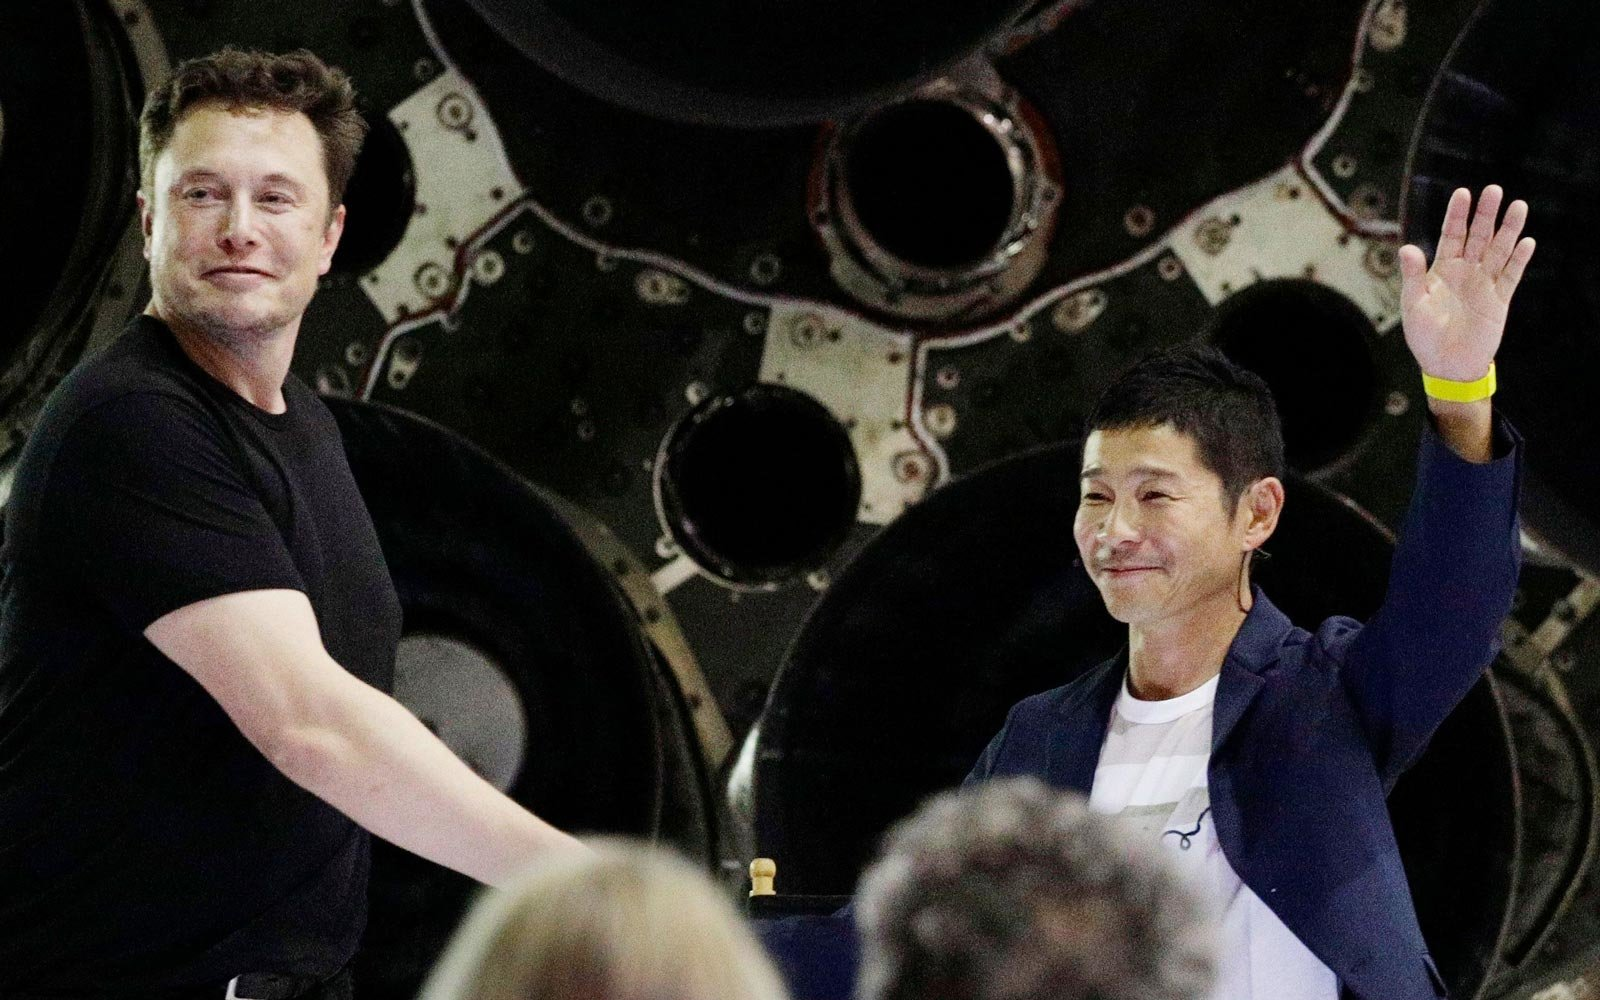 Meet tech billionaire who'll be SpaceX's first moon tourist